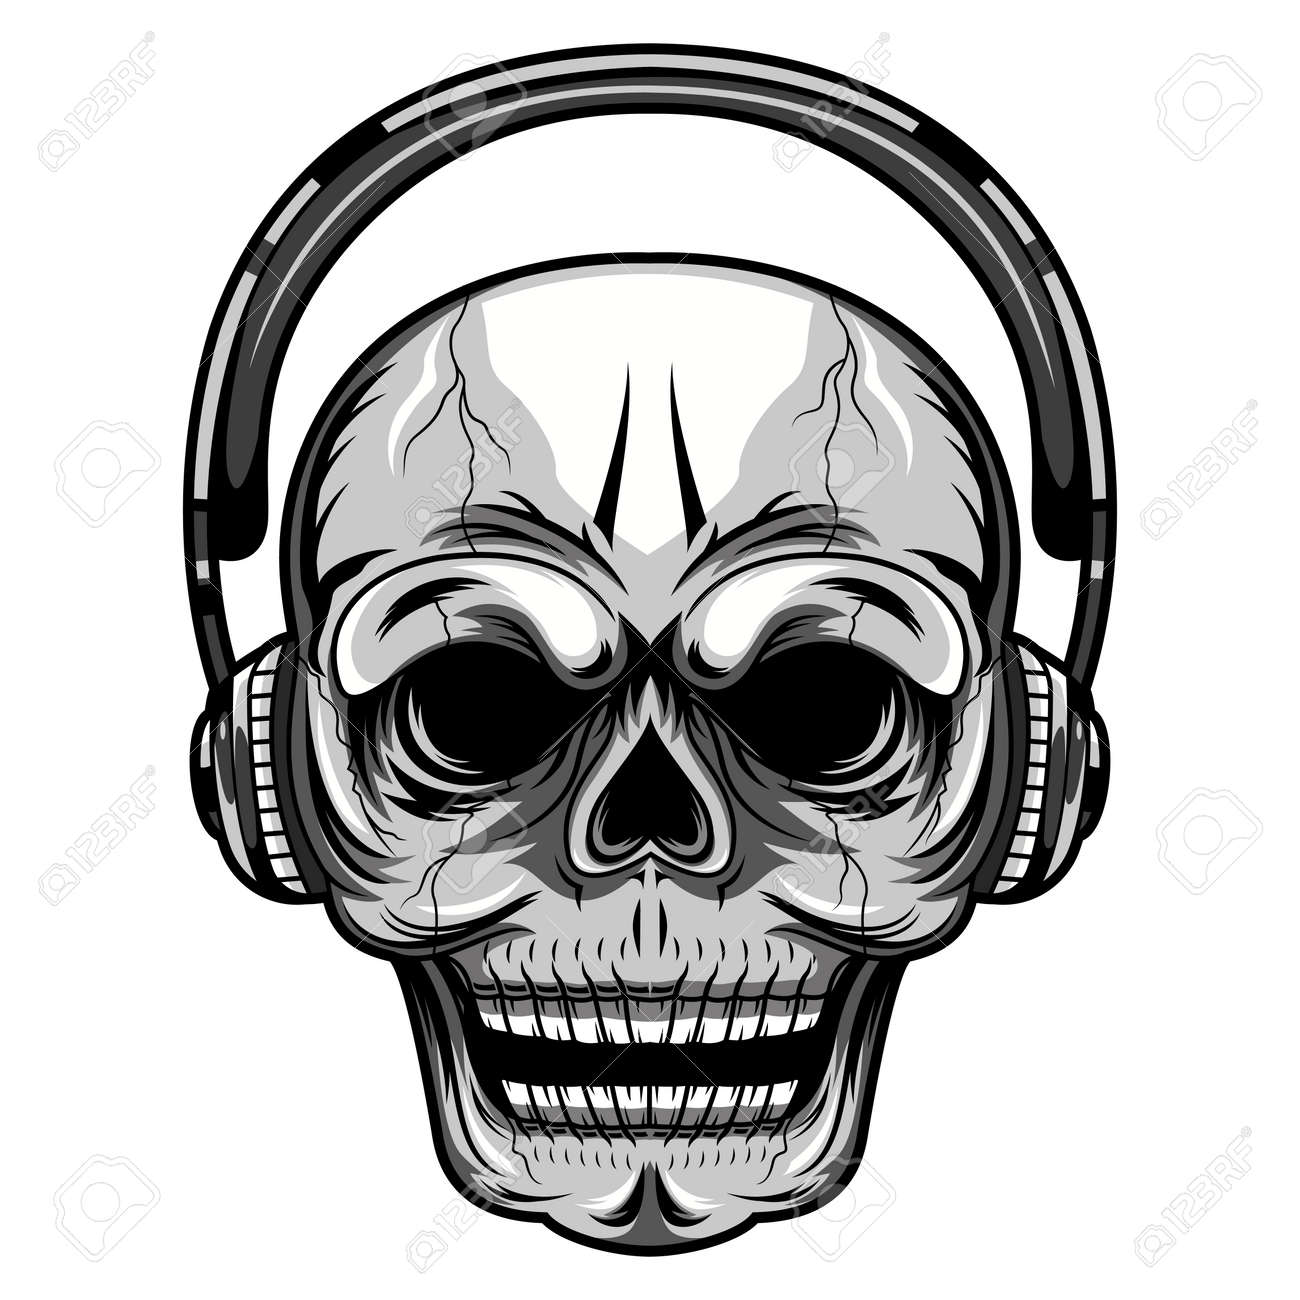 Skull with a headset mascot illustration - 167517035